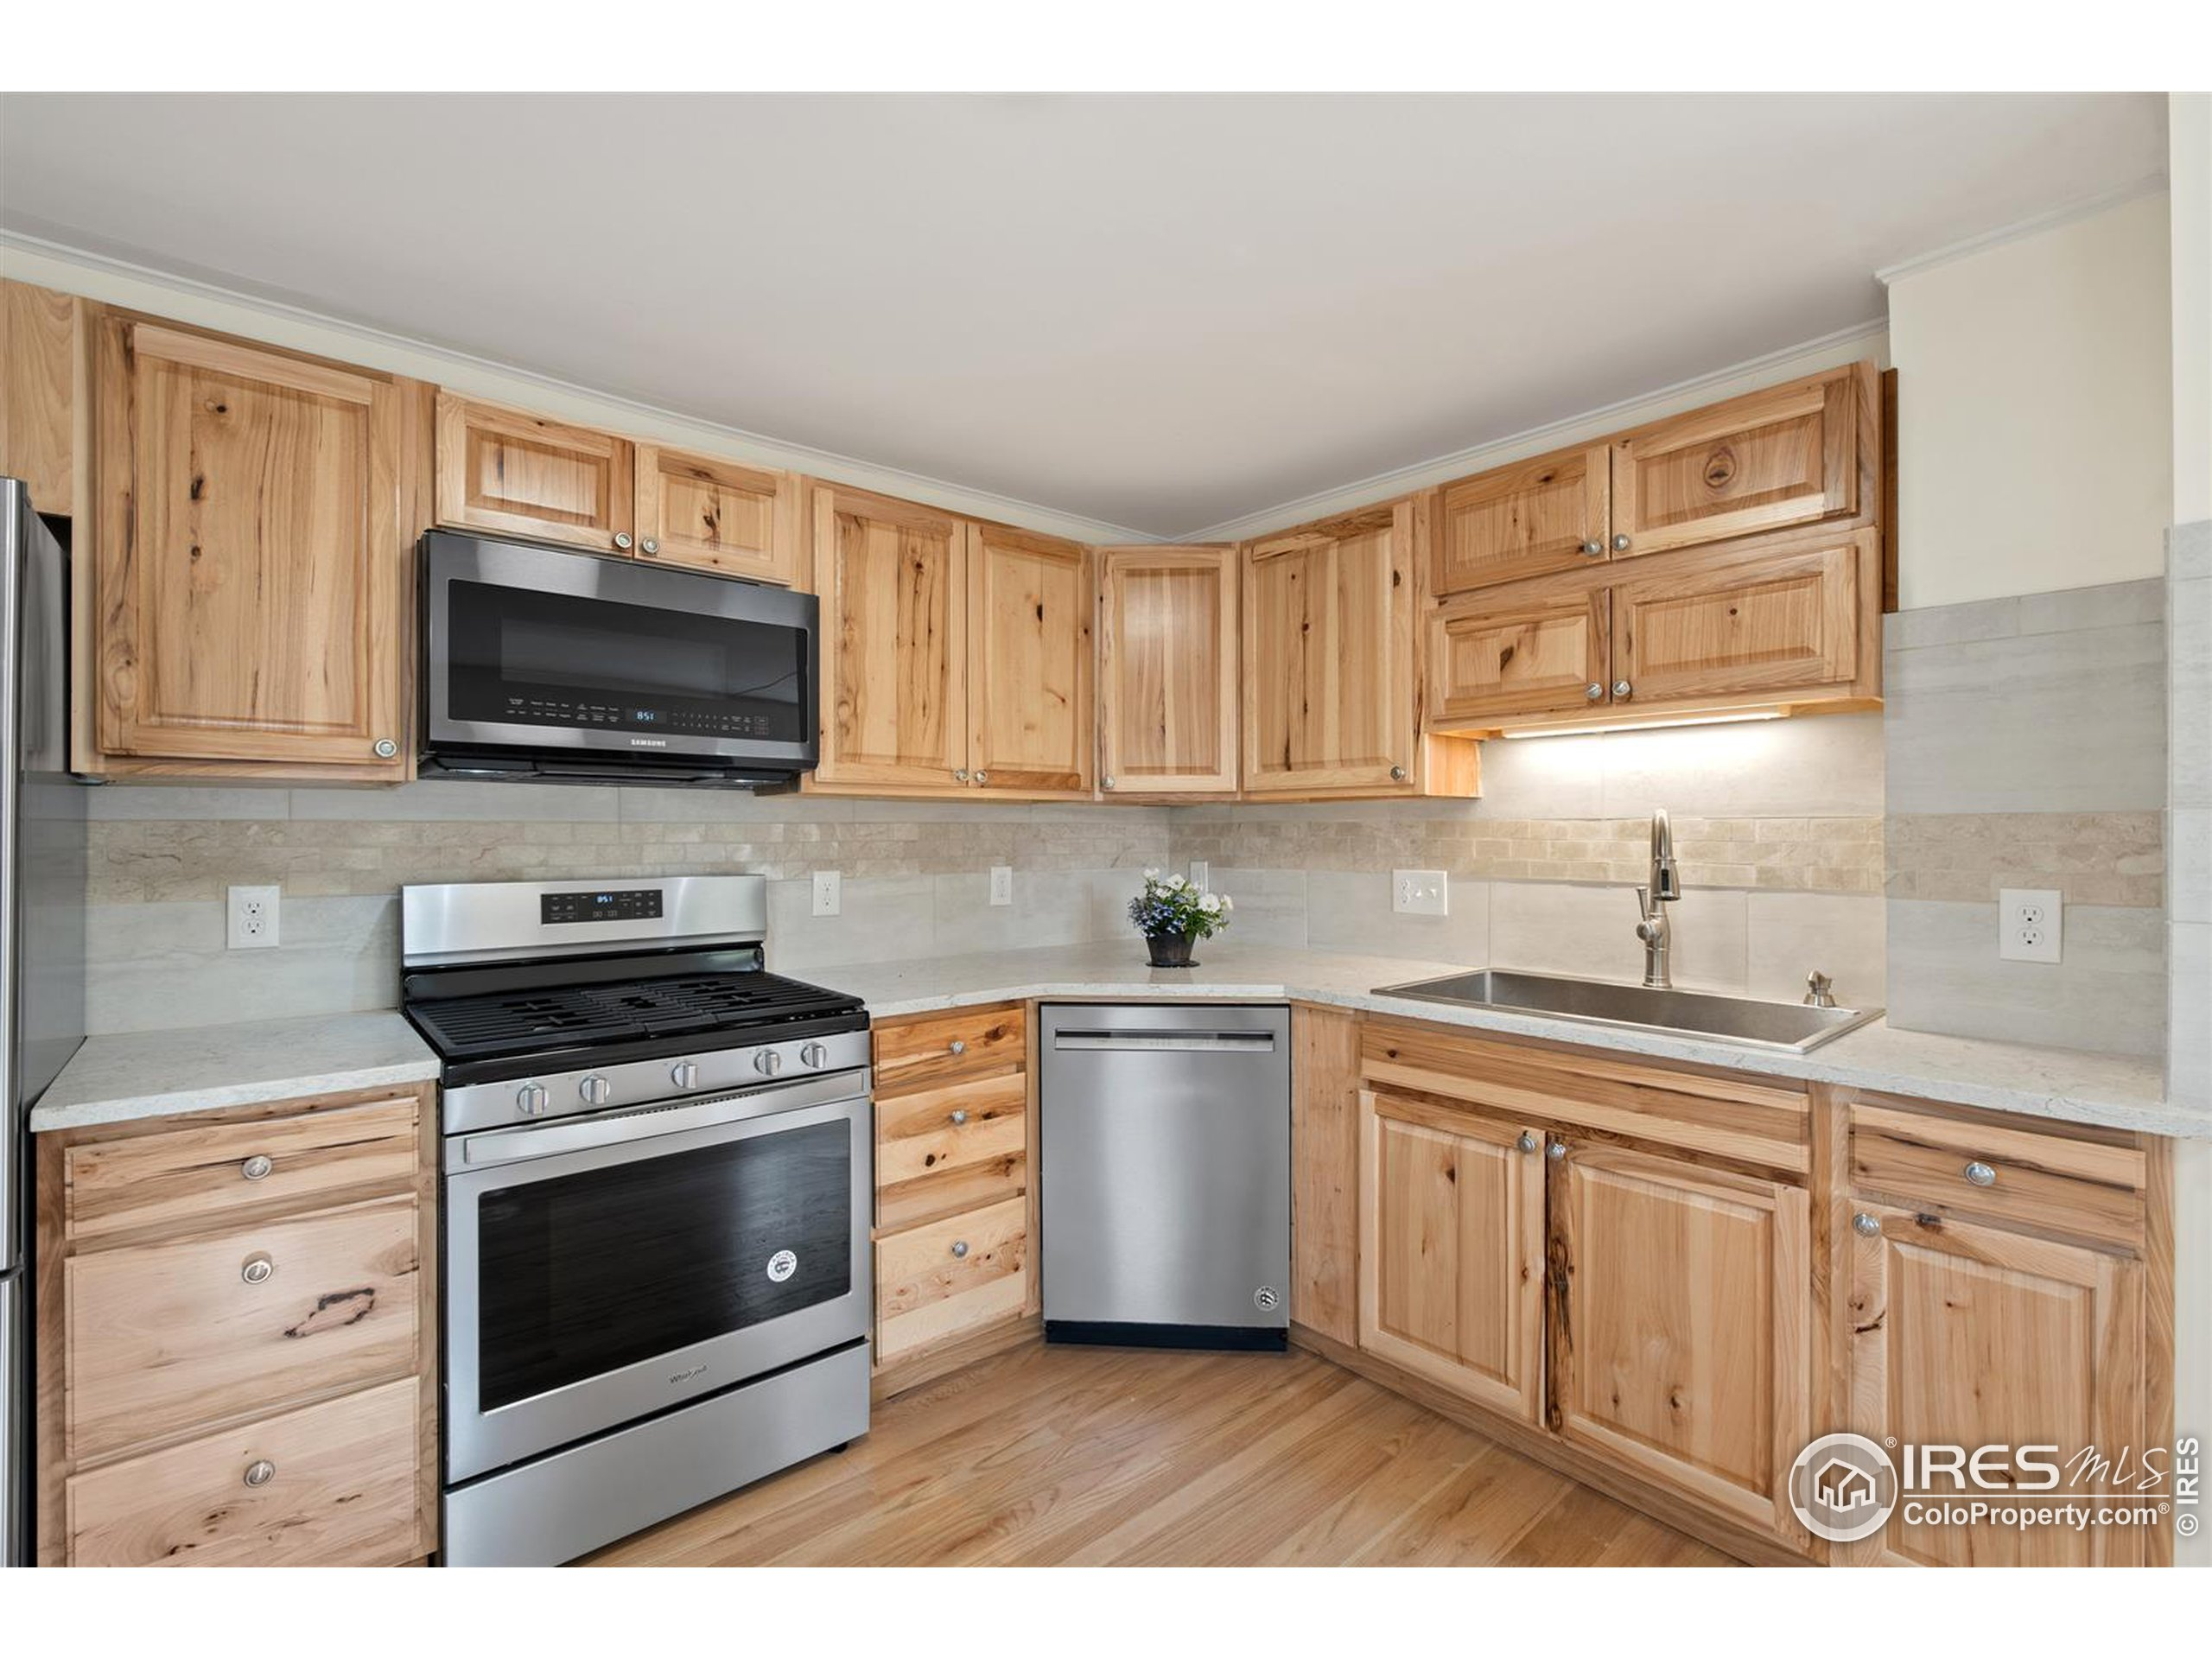 Gas range, stone counters, and beautiful raised-panel cabinets